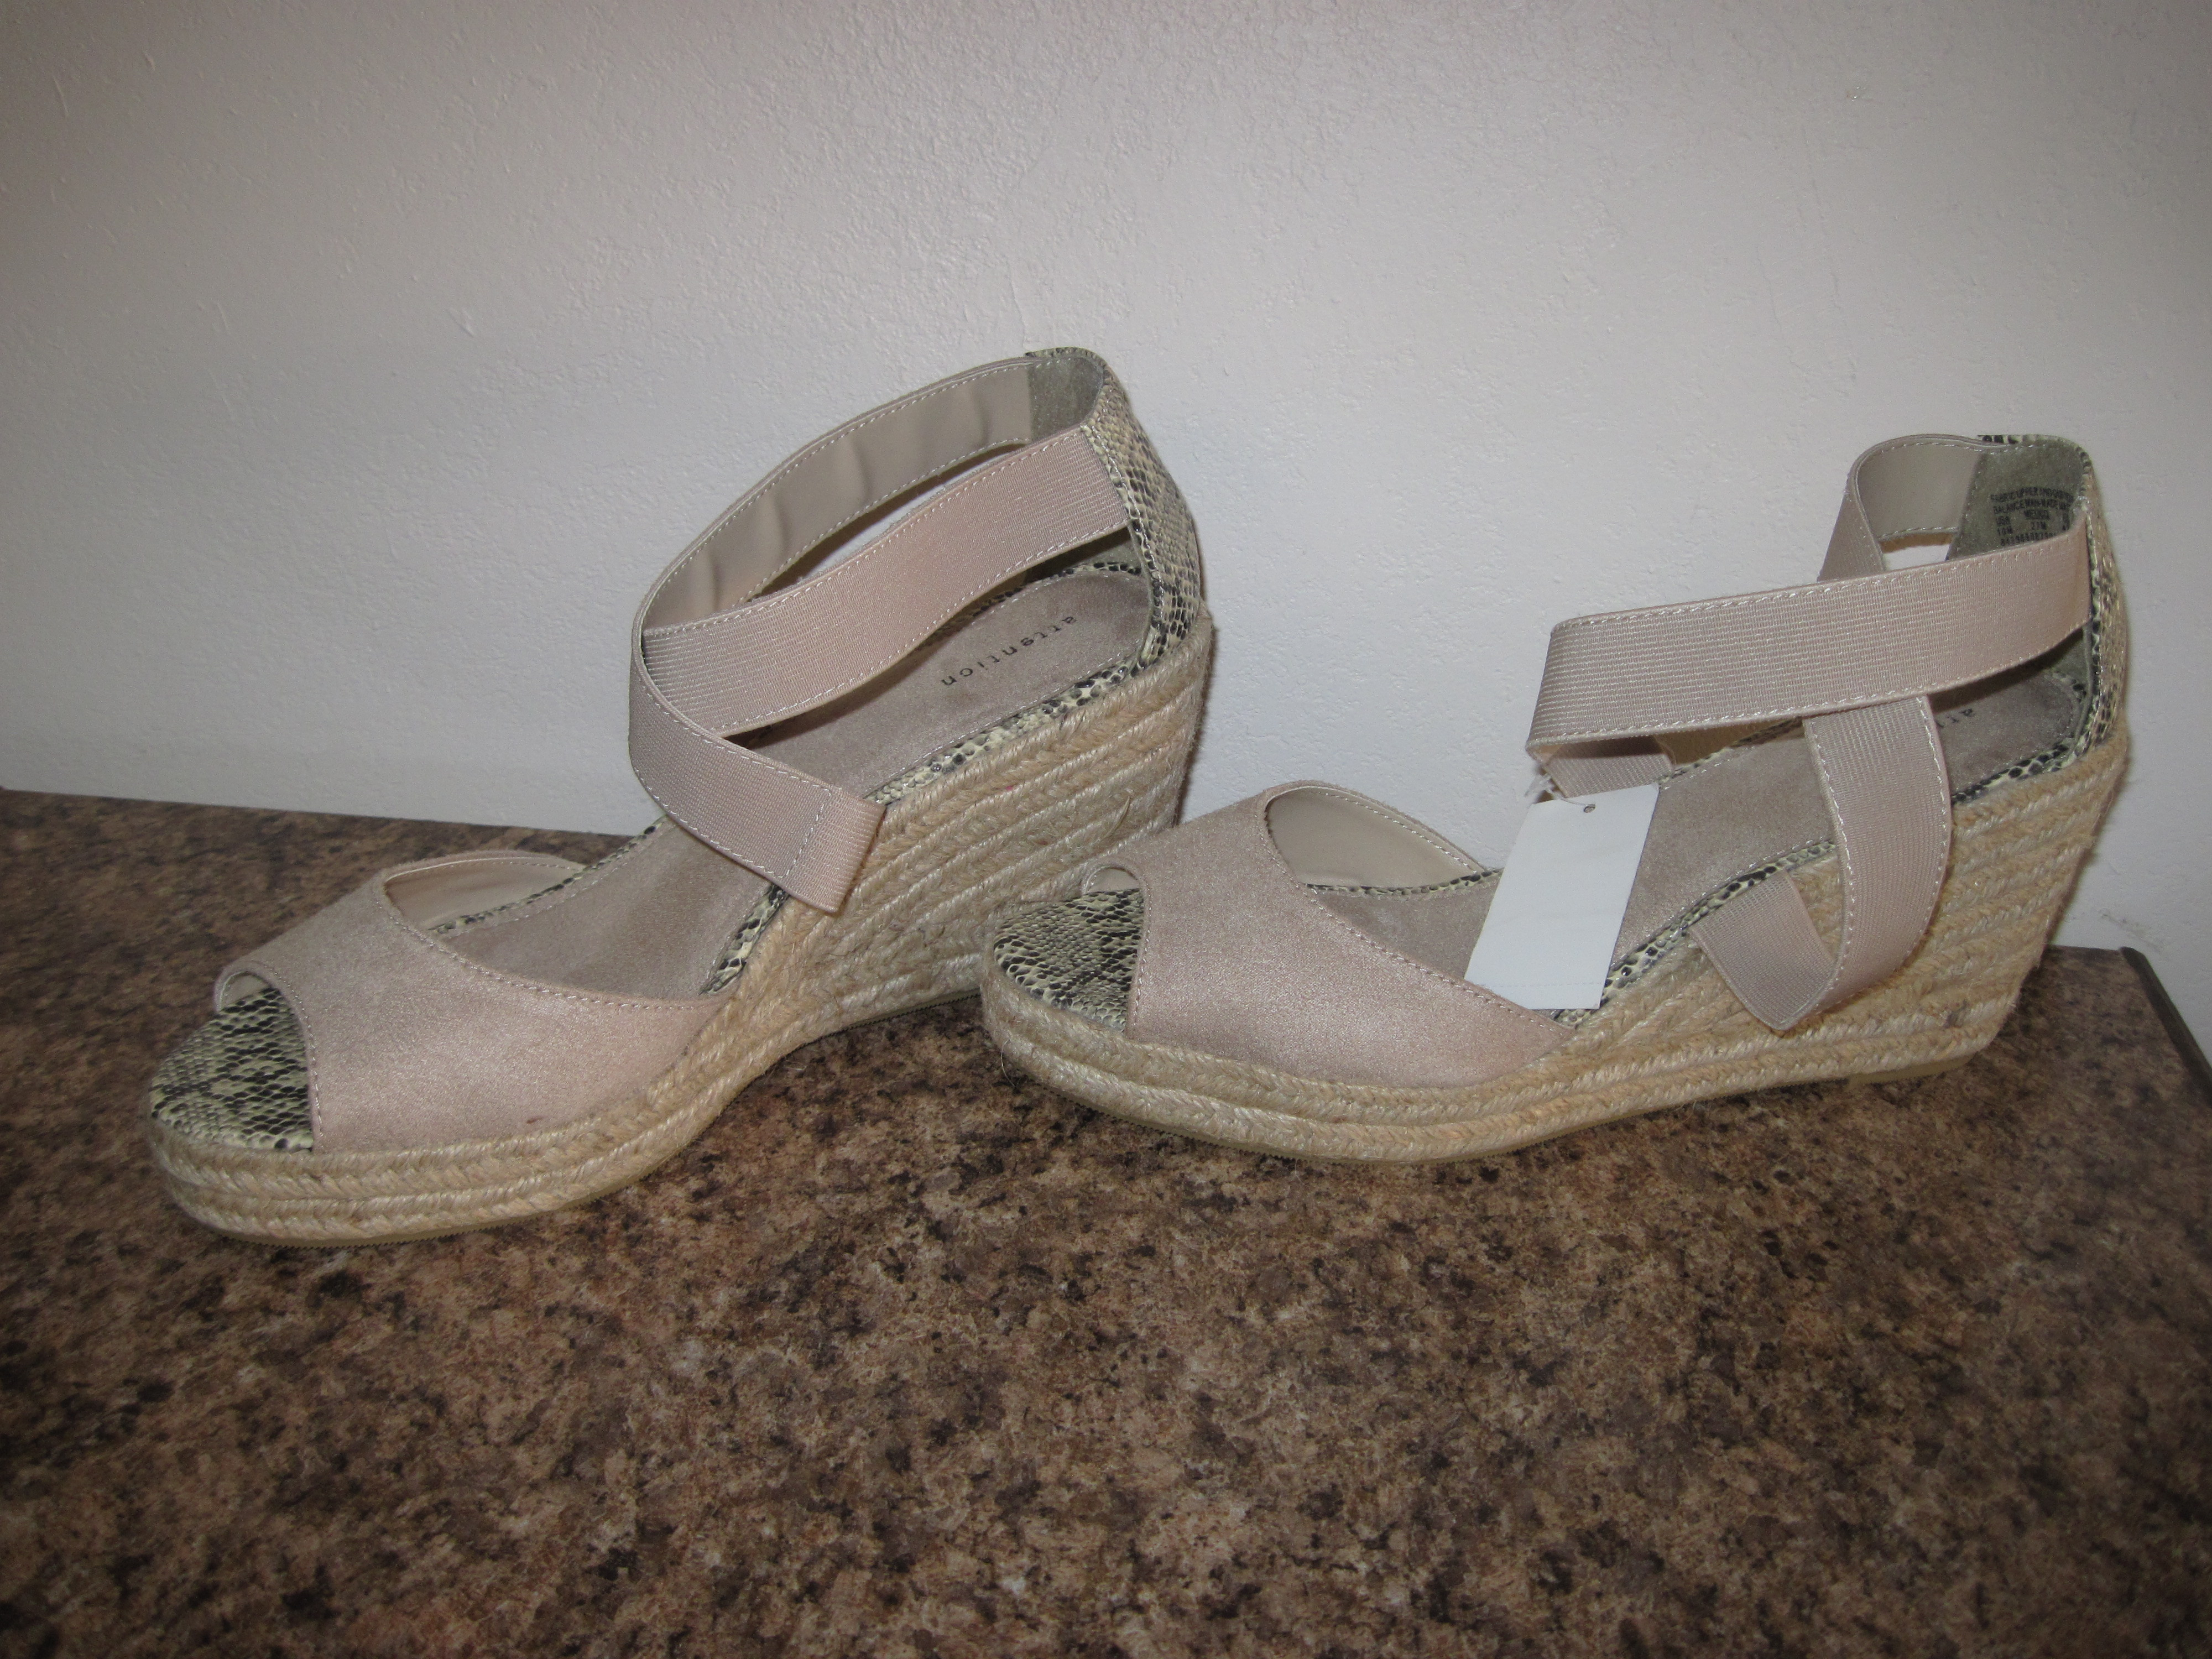 Attention Brand Sz M 10 Snakeskin Platform Wedge Shoe (tan)